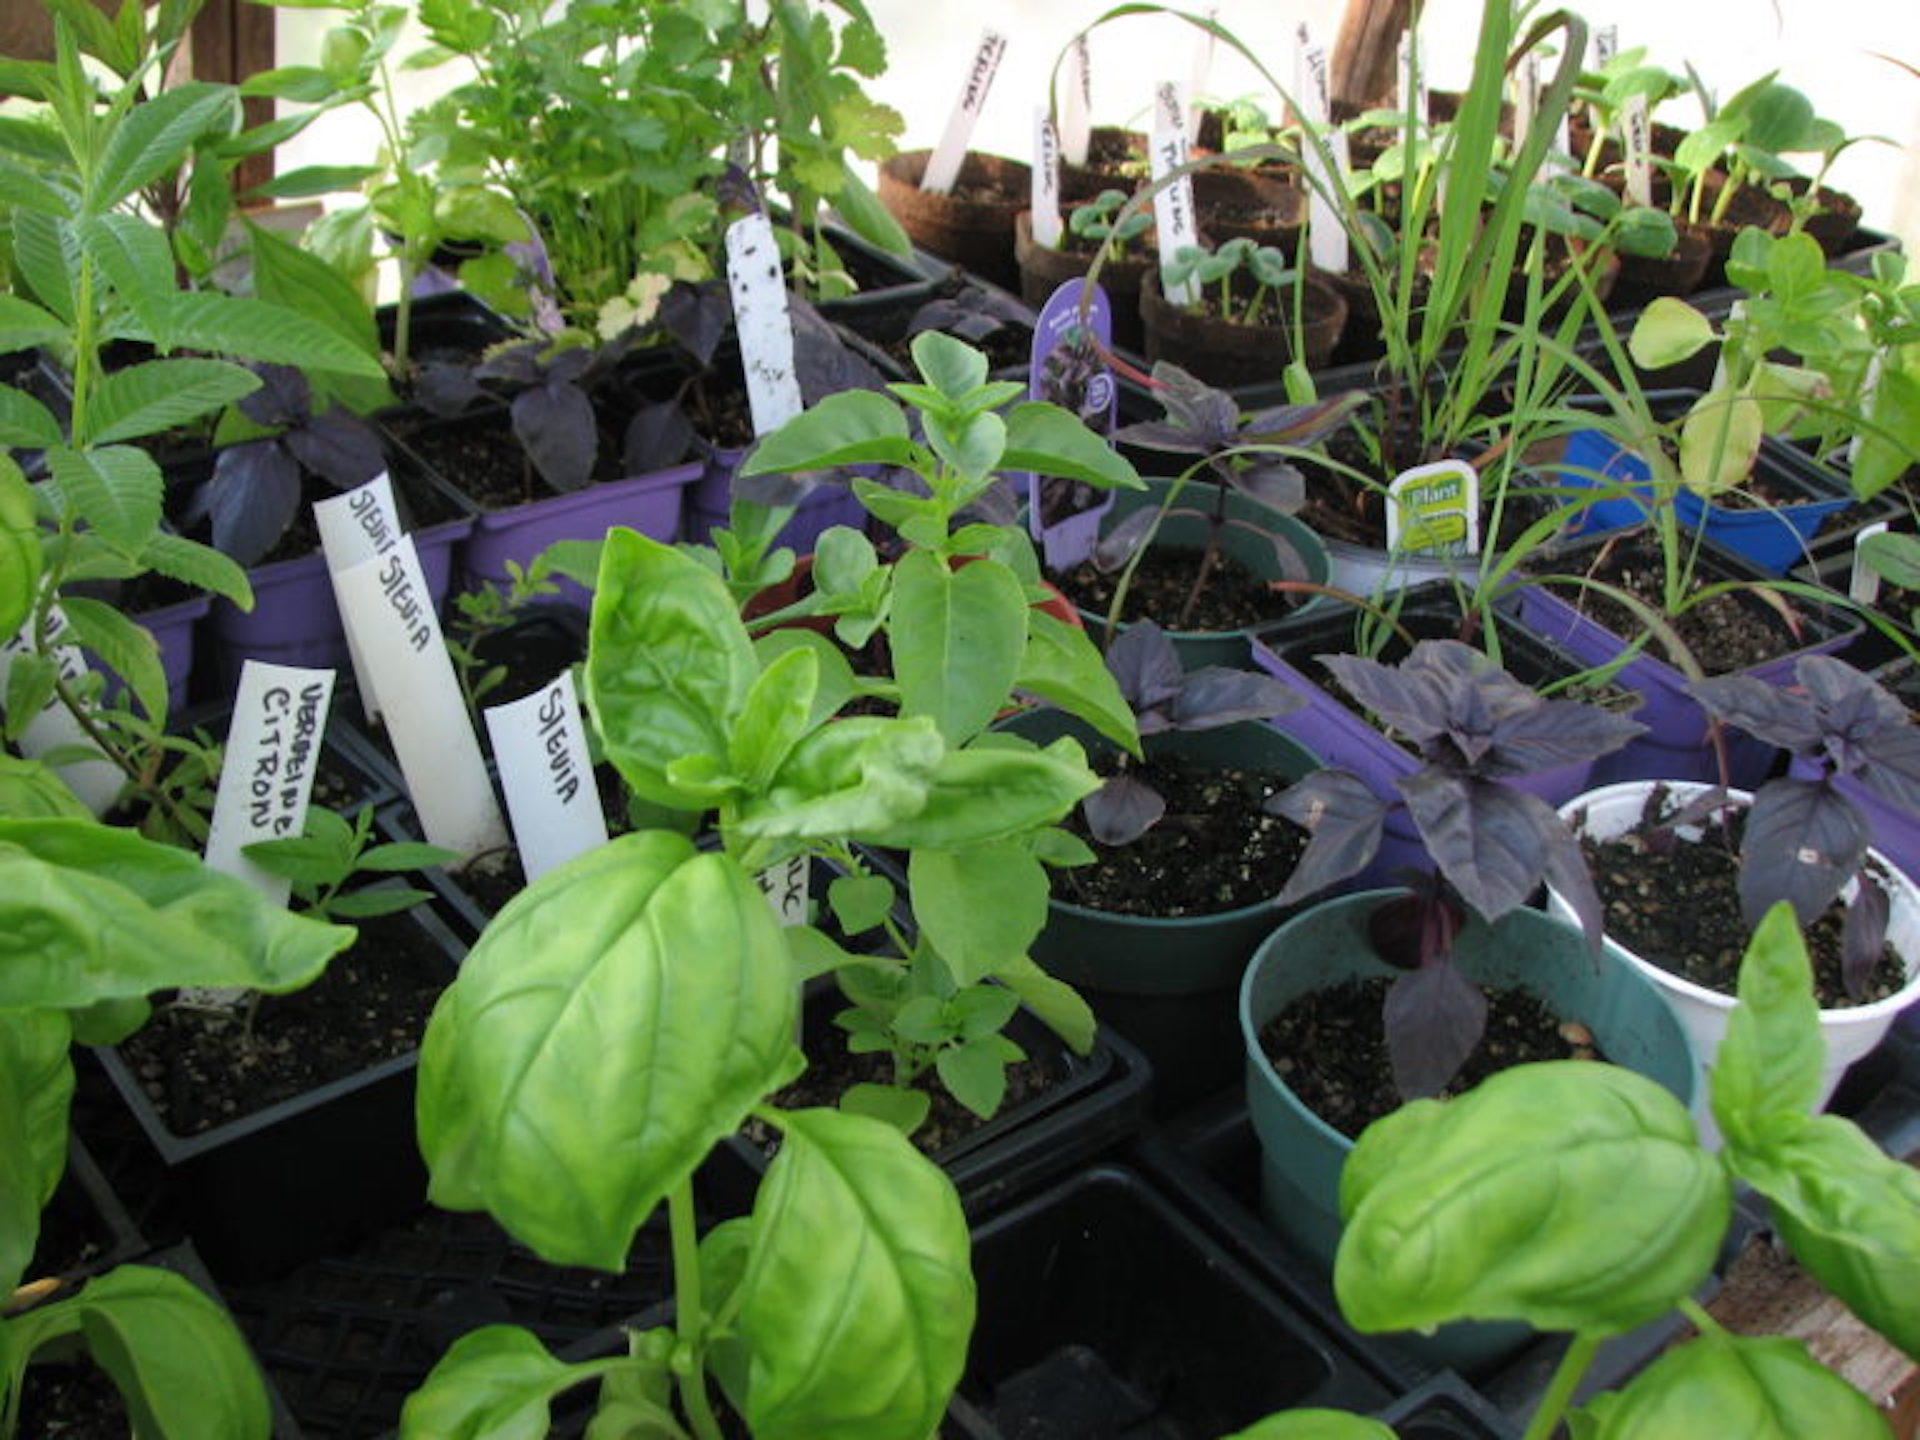 Herb seedlings in a cell tray